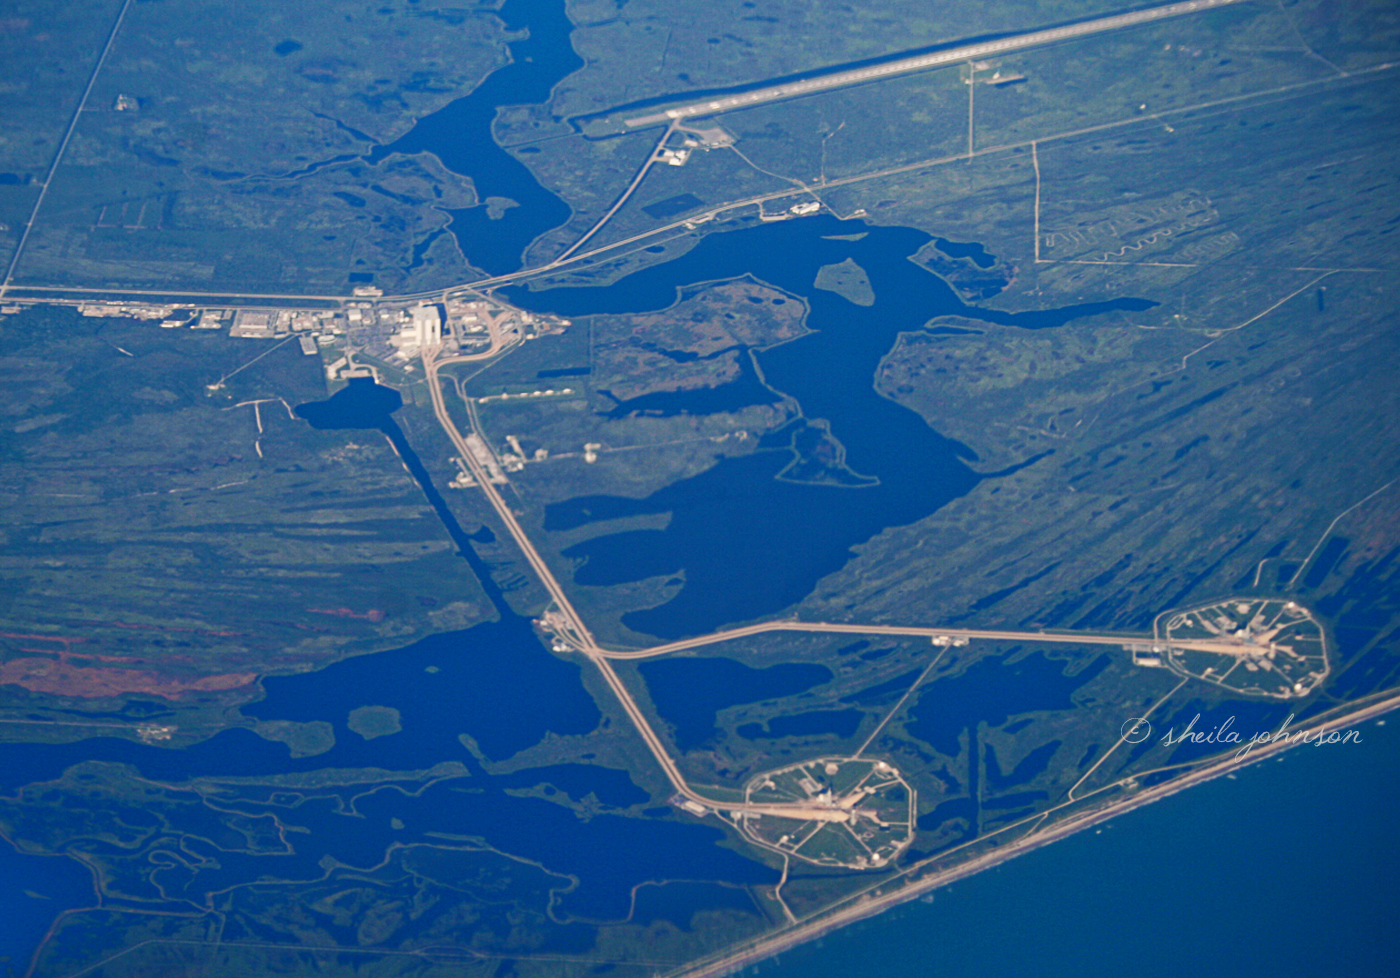 Sometimes You're In The Right Place At Just The Right Second. Such Was The Case On A Commercial Southwest Flight From Baltimore To Palm Beach. We Flew Over Kennedy Space Center, And I Happened To Be On The Right Side Of The Plane. The Two Circles In Front Are The Launch Pads Used In The Space Shuttle Program.